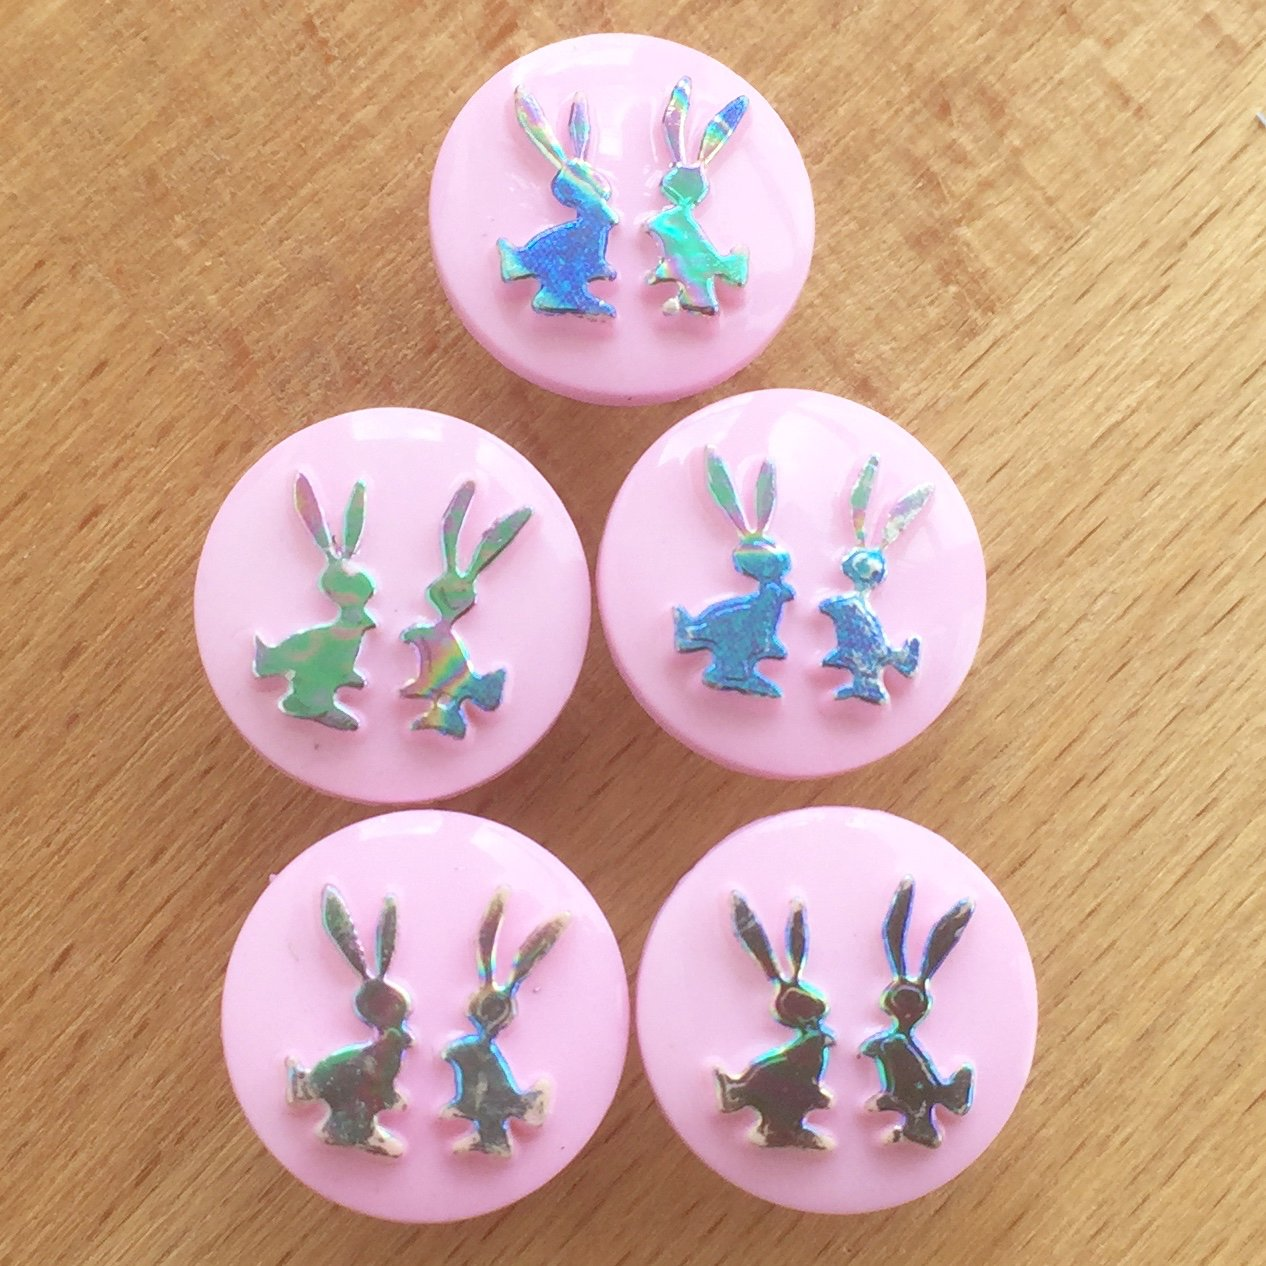 10 x irridescent bunny buttons, white or pink, 15mm diameter ( size 24) (pink) Always Knitting and Sewing